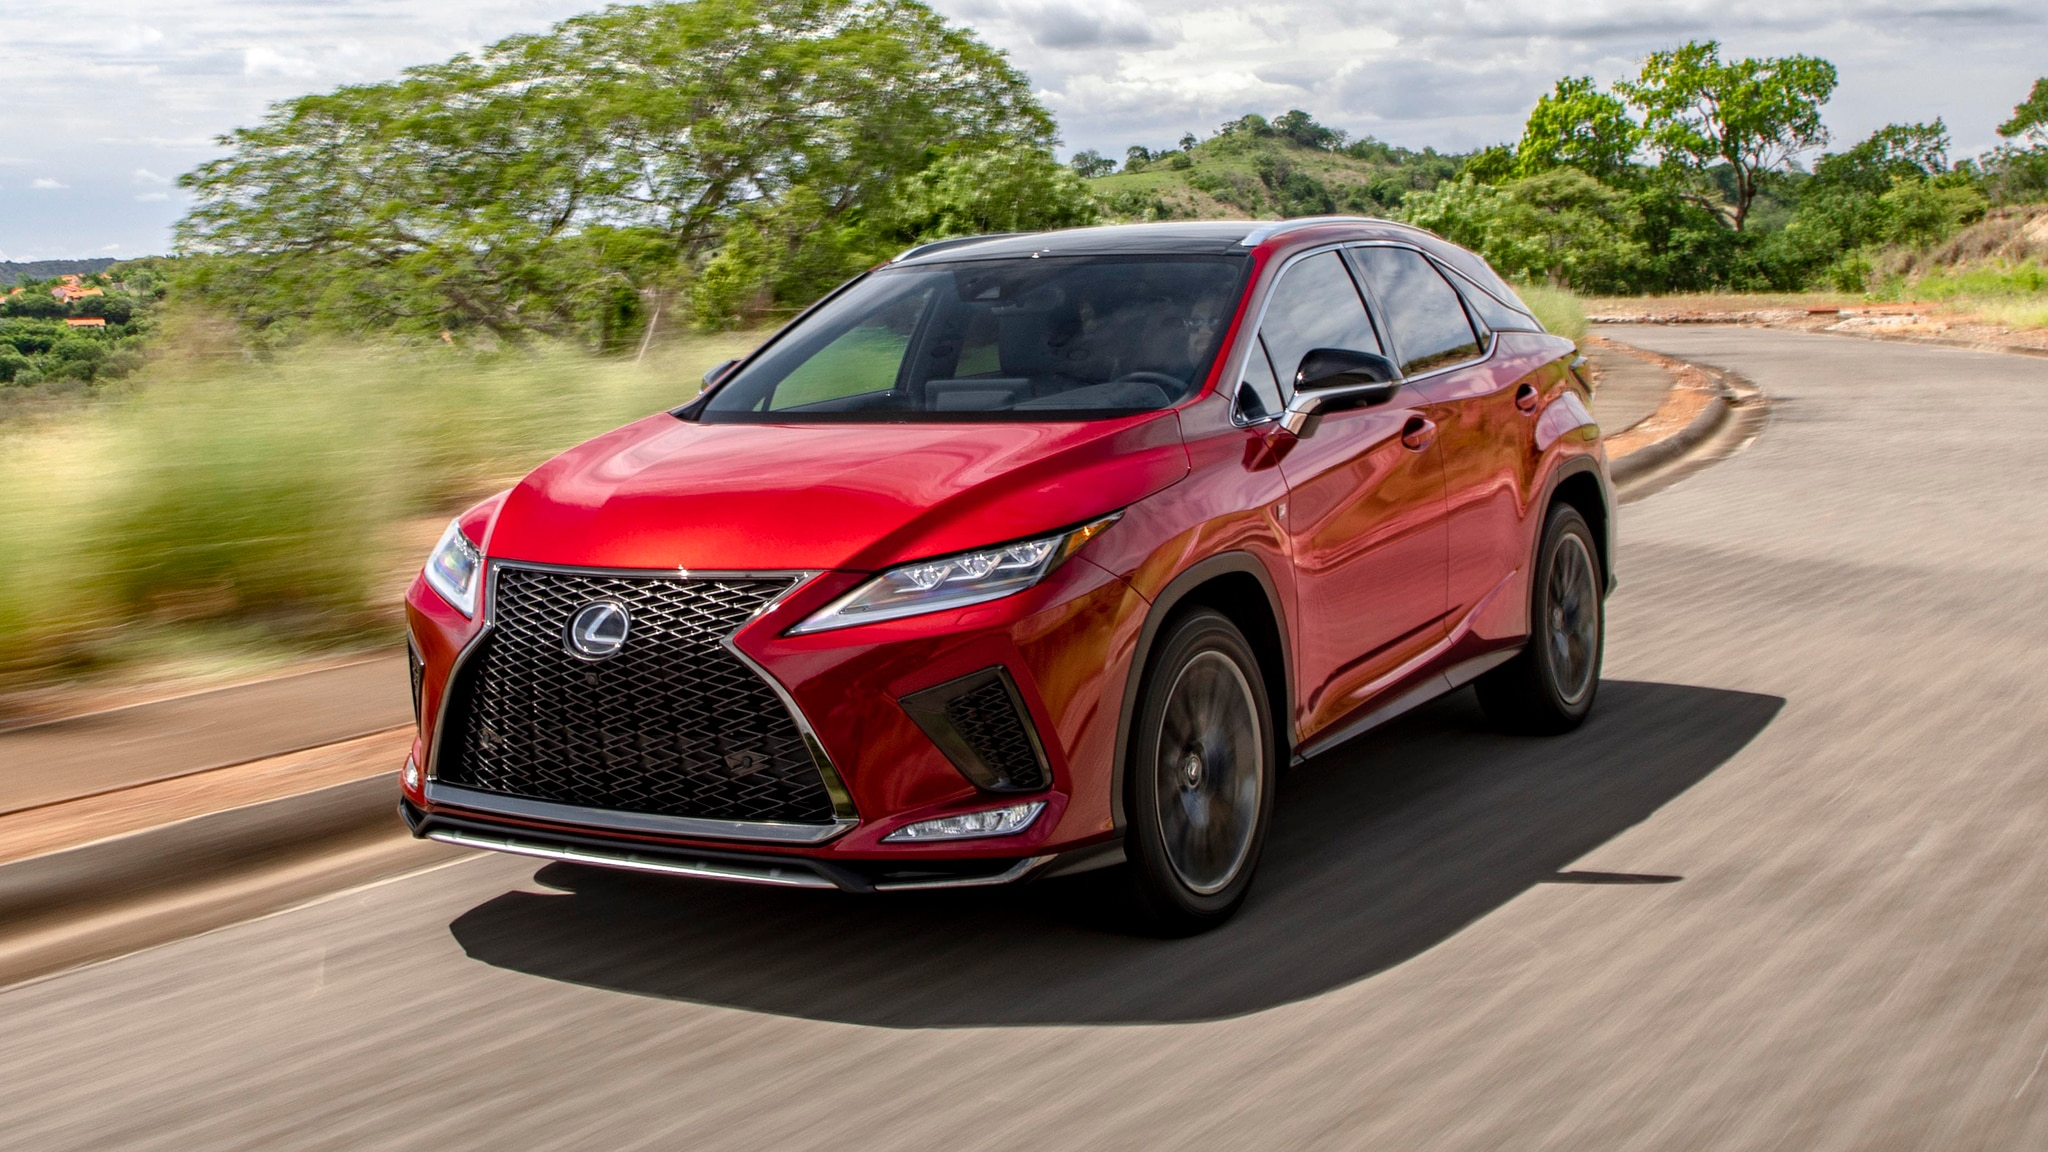 2020 lexus rx first drive review blink and you'll miss it